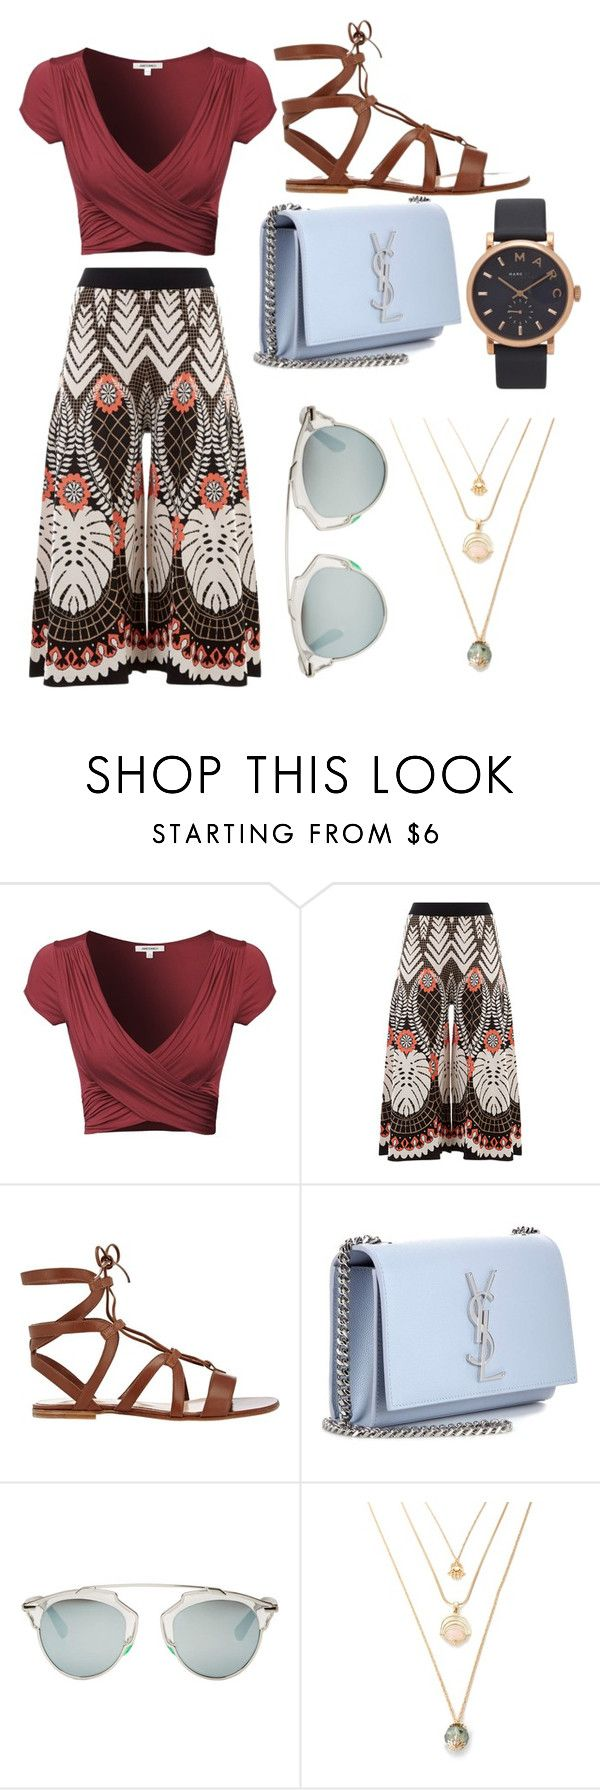 """Modern bohemian"" by uyalyssa ❤ liked on Polyvore featuring Temperley London, Gianvito Rossi, Yves Saint Laurent, Christian Dior, Marc Jacobs and modern"